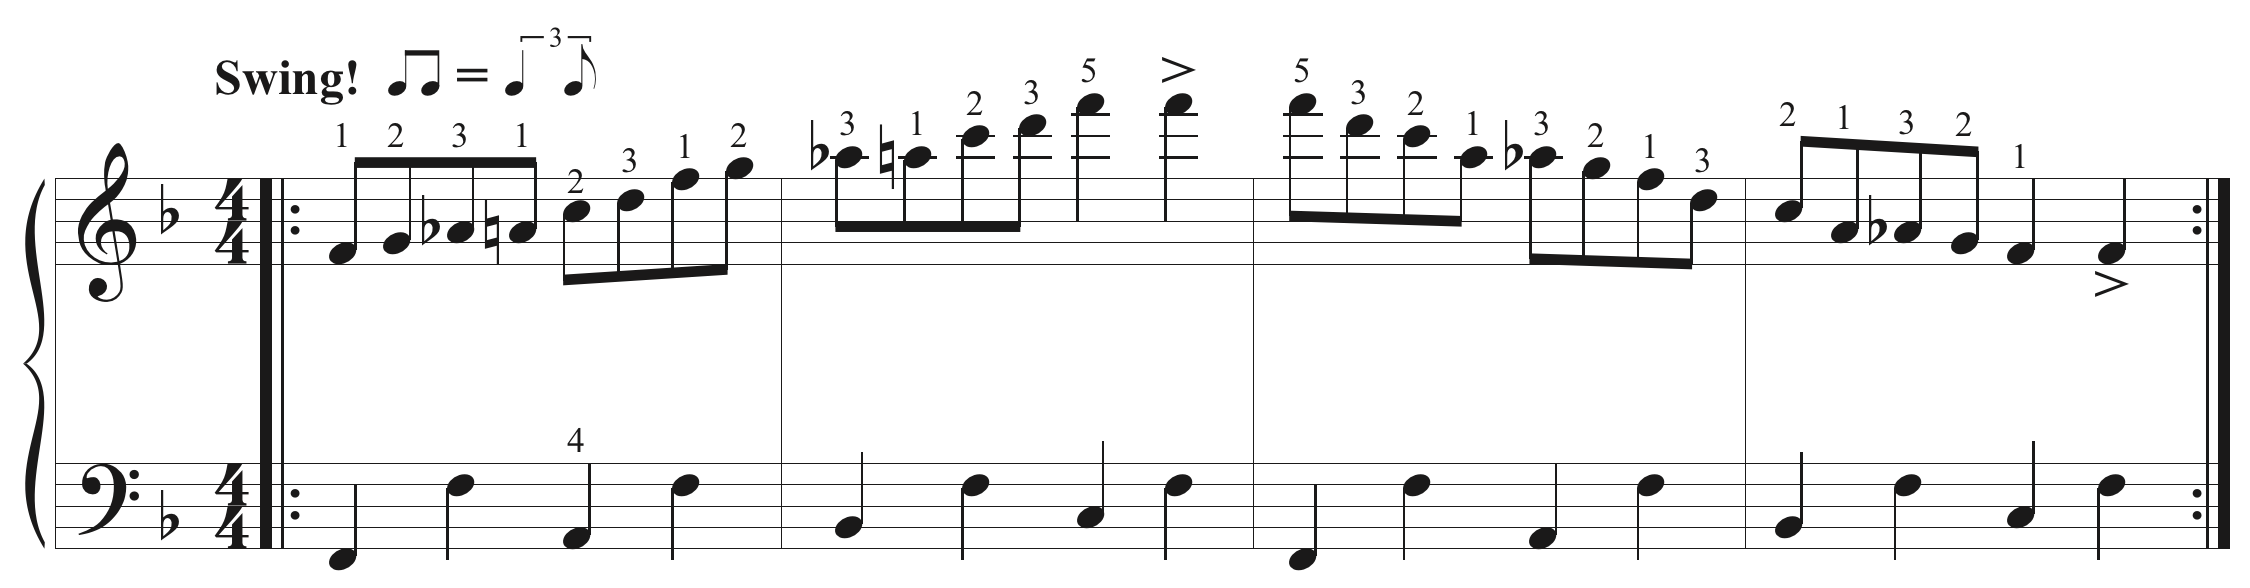 One of several blues scale workouts.